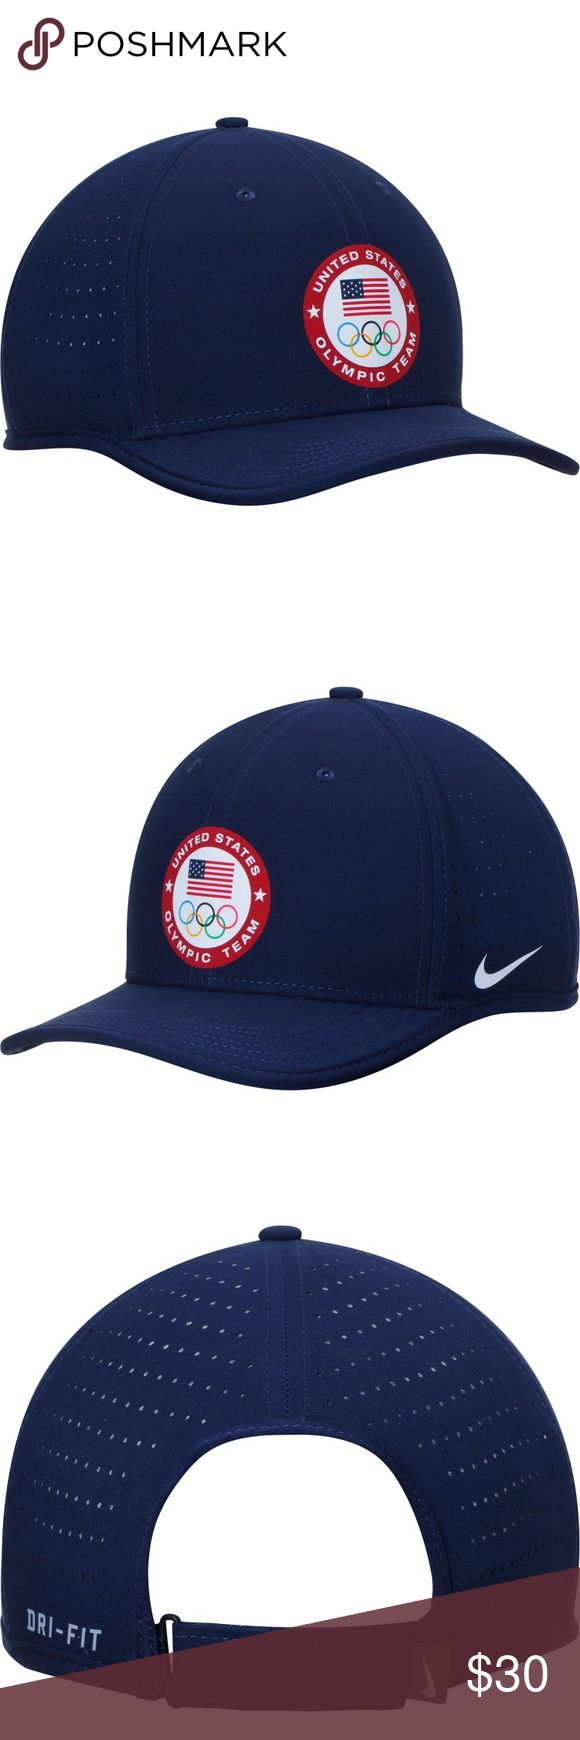 Nike Navy Team USA Performance Adjustable Hat NWT. Men's Nike Navy Team USA Classic Performance Adjustable Hat. Material: 100% Polyester High Crown Structured fit Flat bill Adjustable hook and loop fastener strap Dri-FIT ® technology wicks away moisture Four perforated side and back panels Heat-sealed graphics Two front panels with eyelets One size fits most Wipe clean with a damp cloth, lay flat to dry. Do not iron. Officially licensed Imported Brand: Nike Nike Accessories Hats